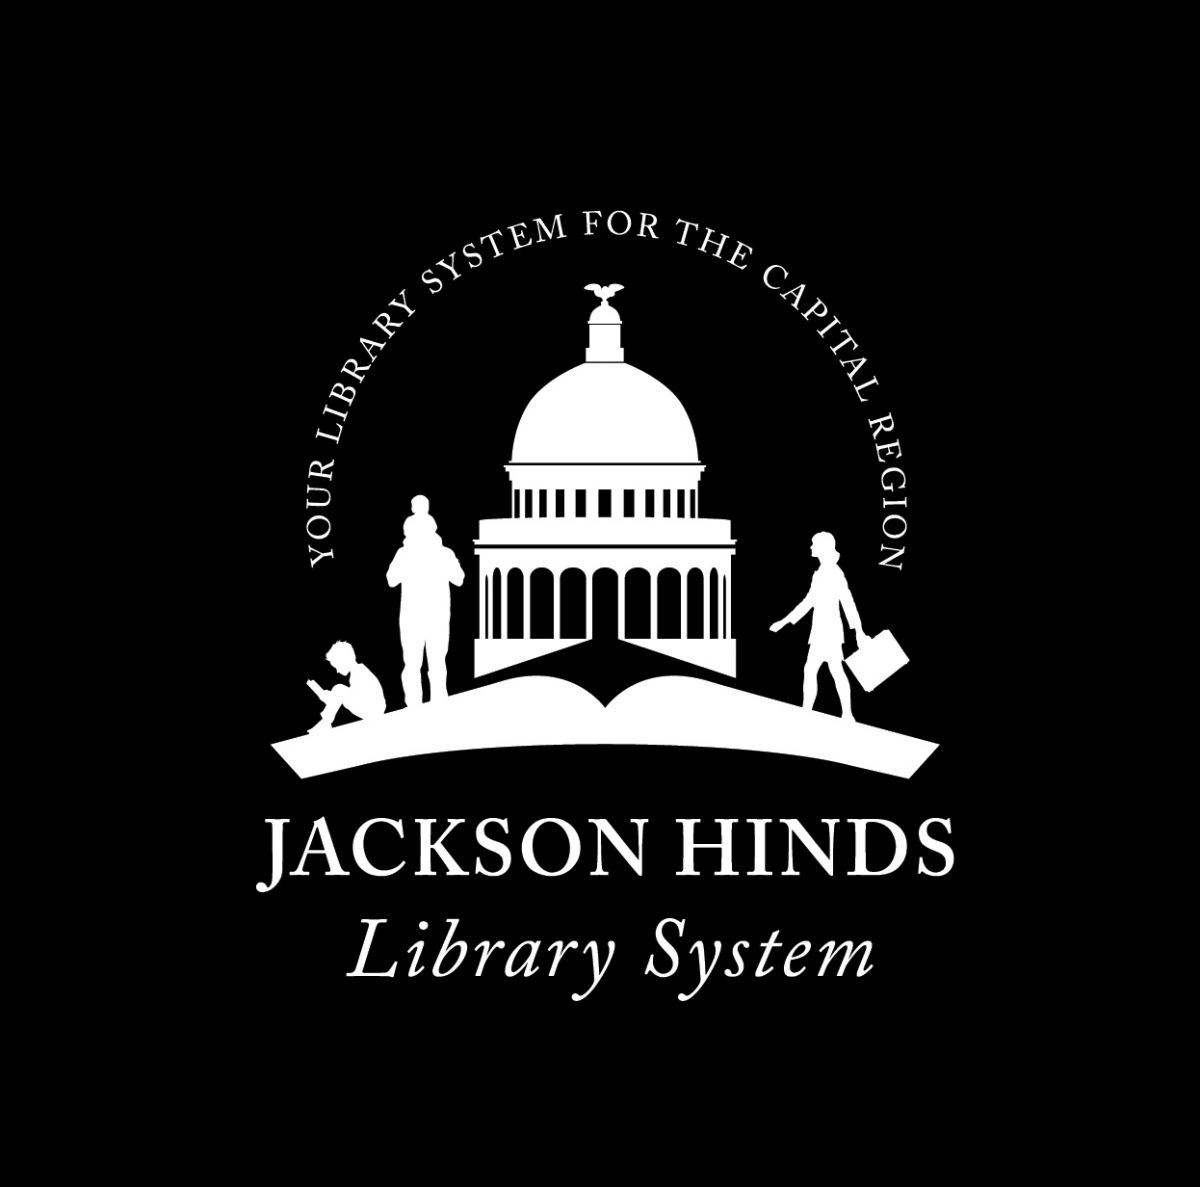 Jackson hinds library system